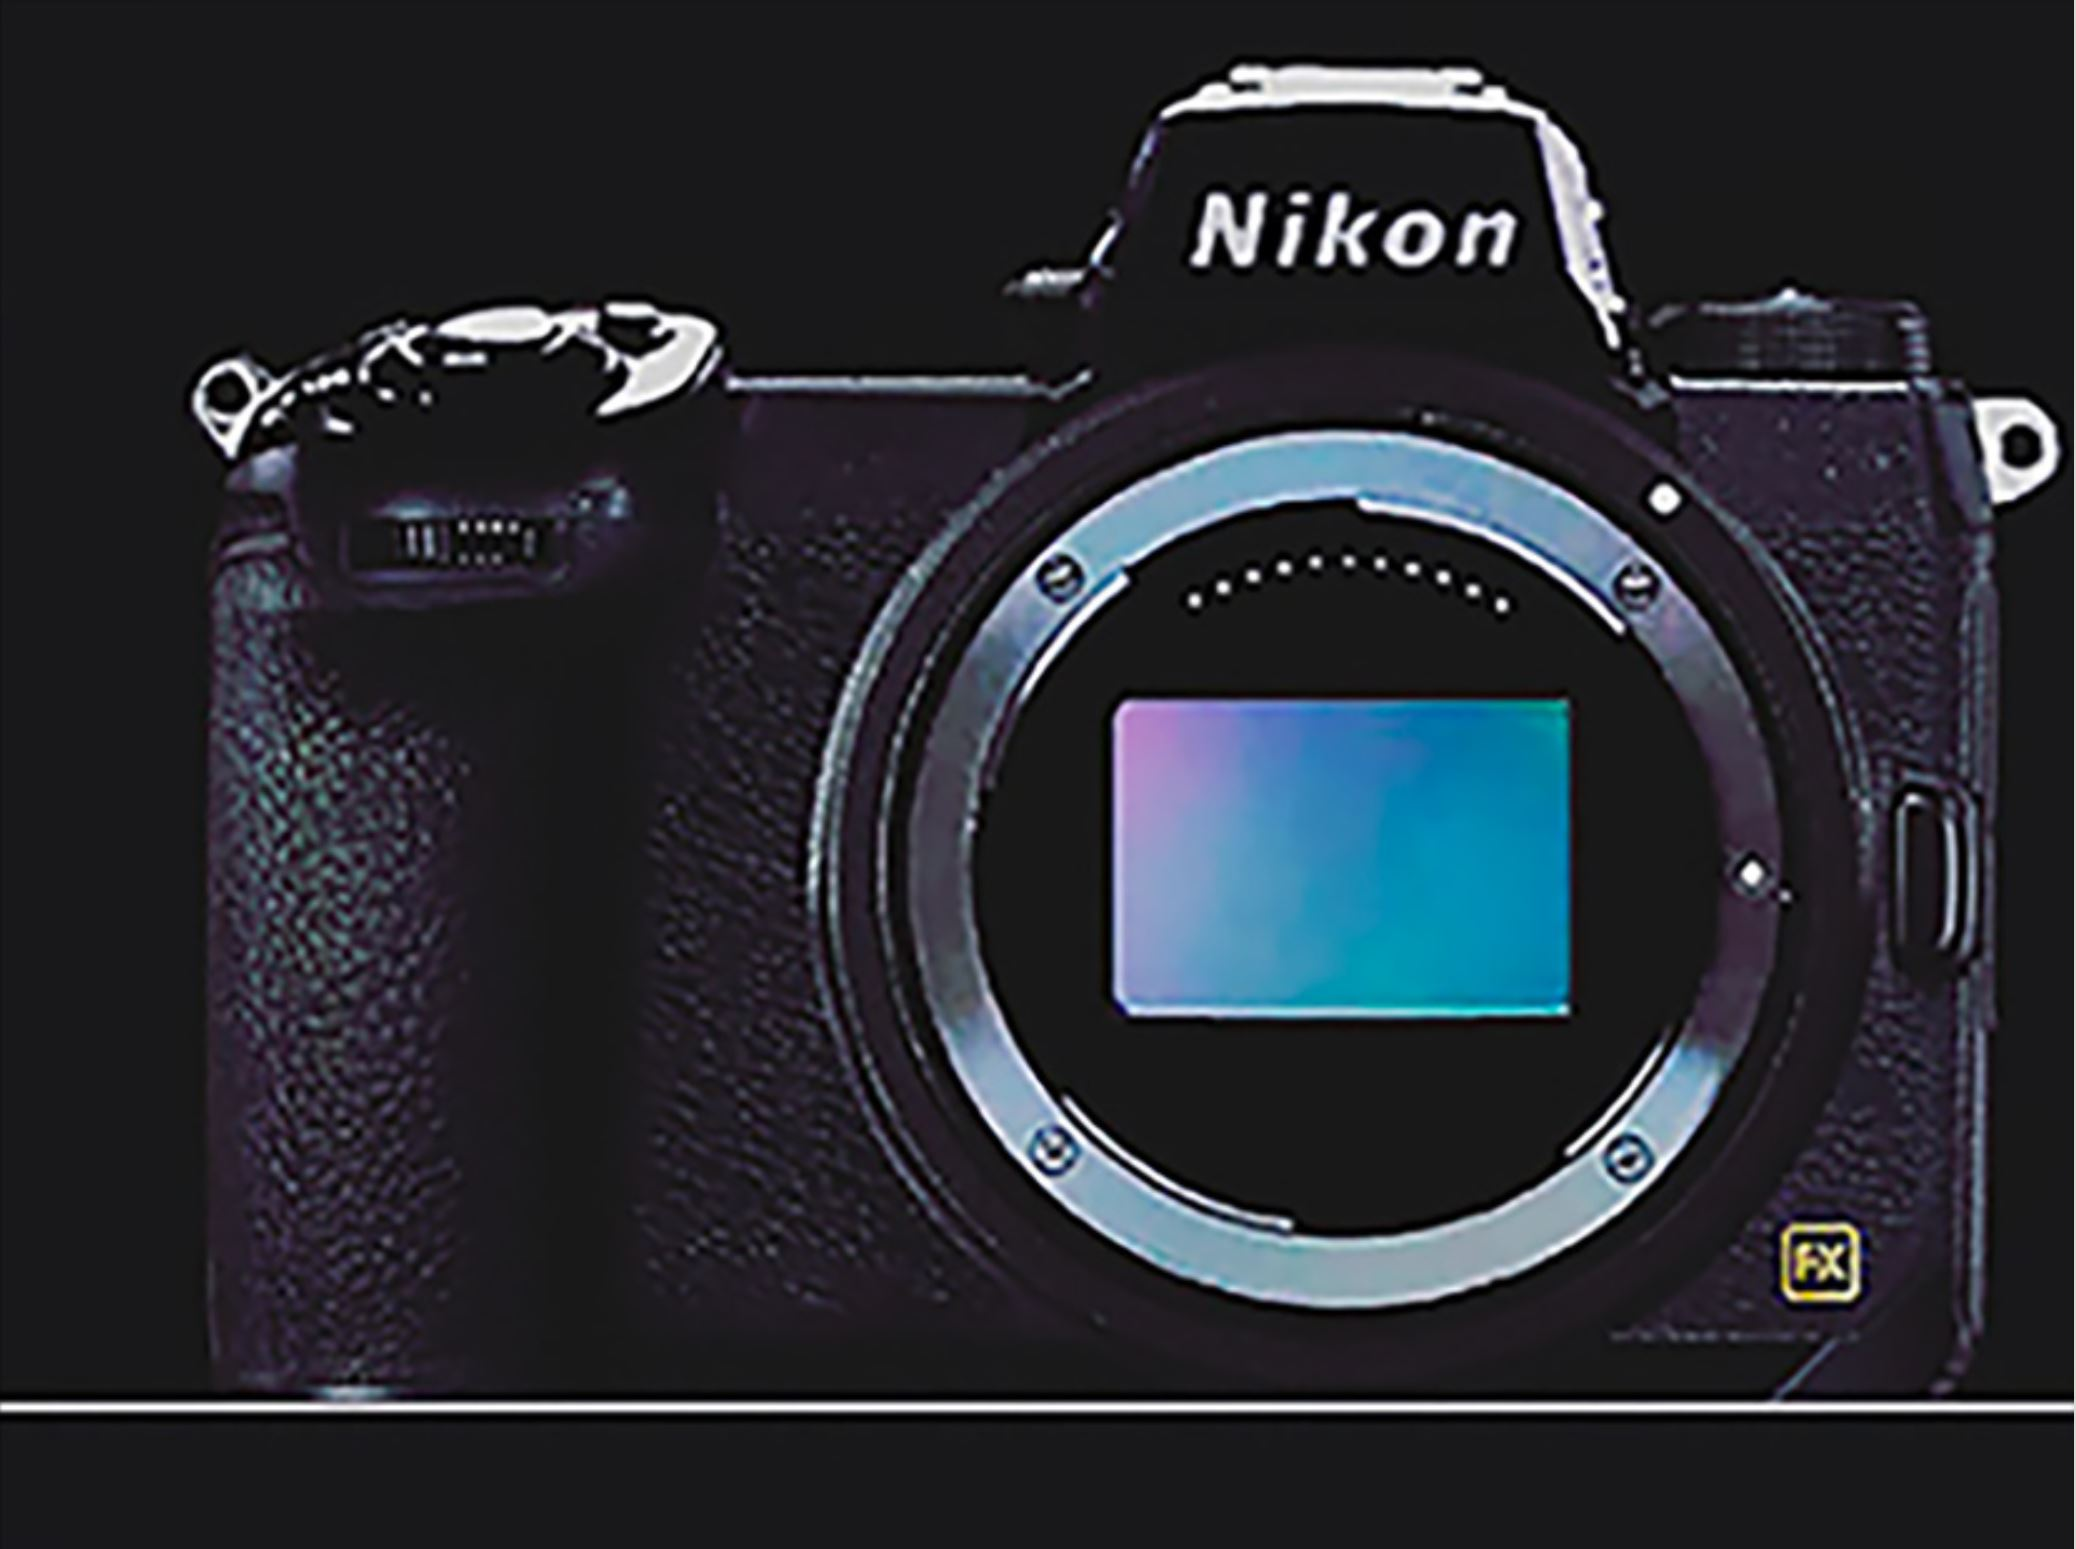 Nikon Full Frame Mirrorless Camera New Teaser Body